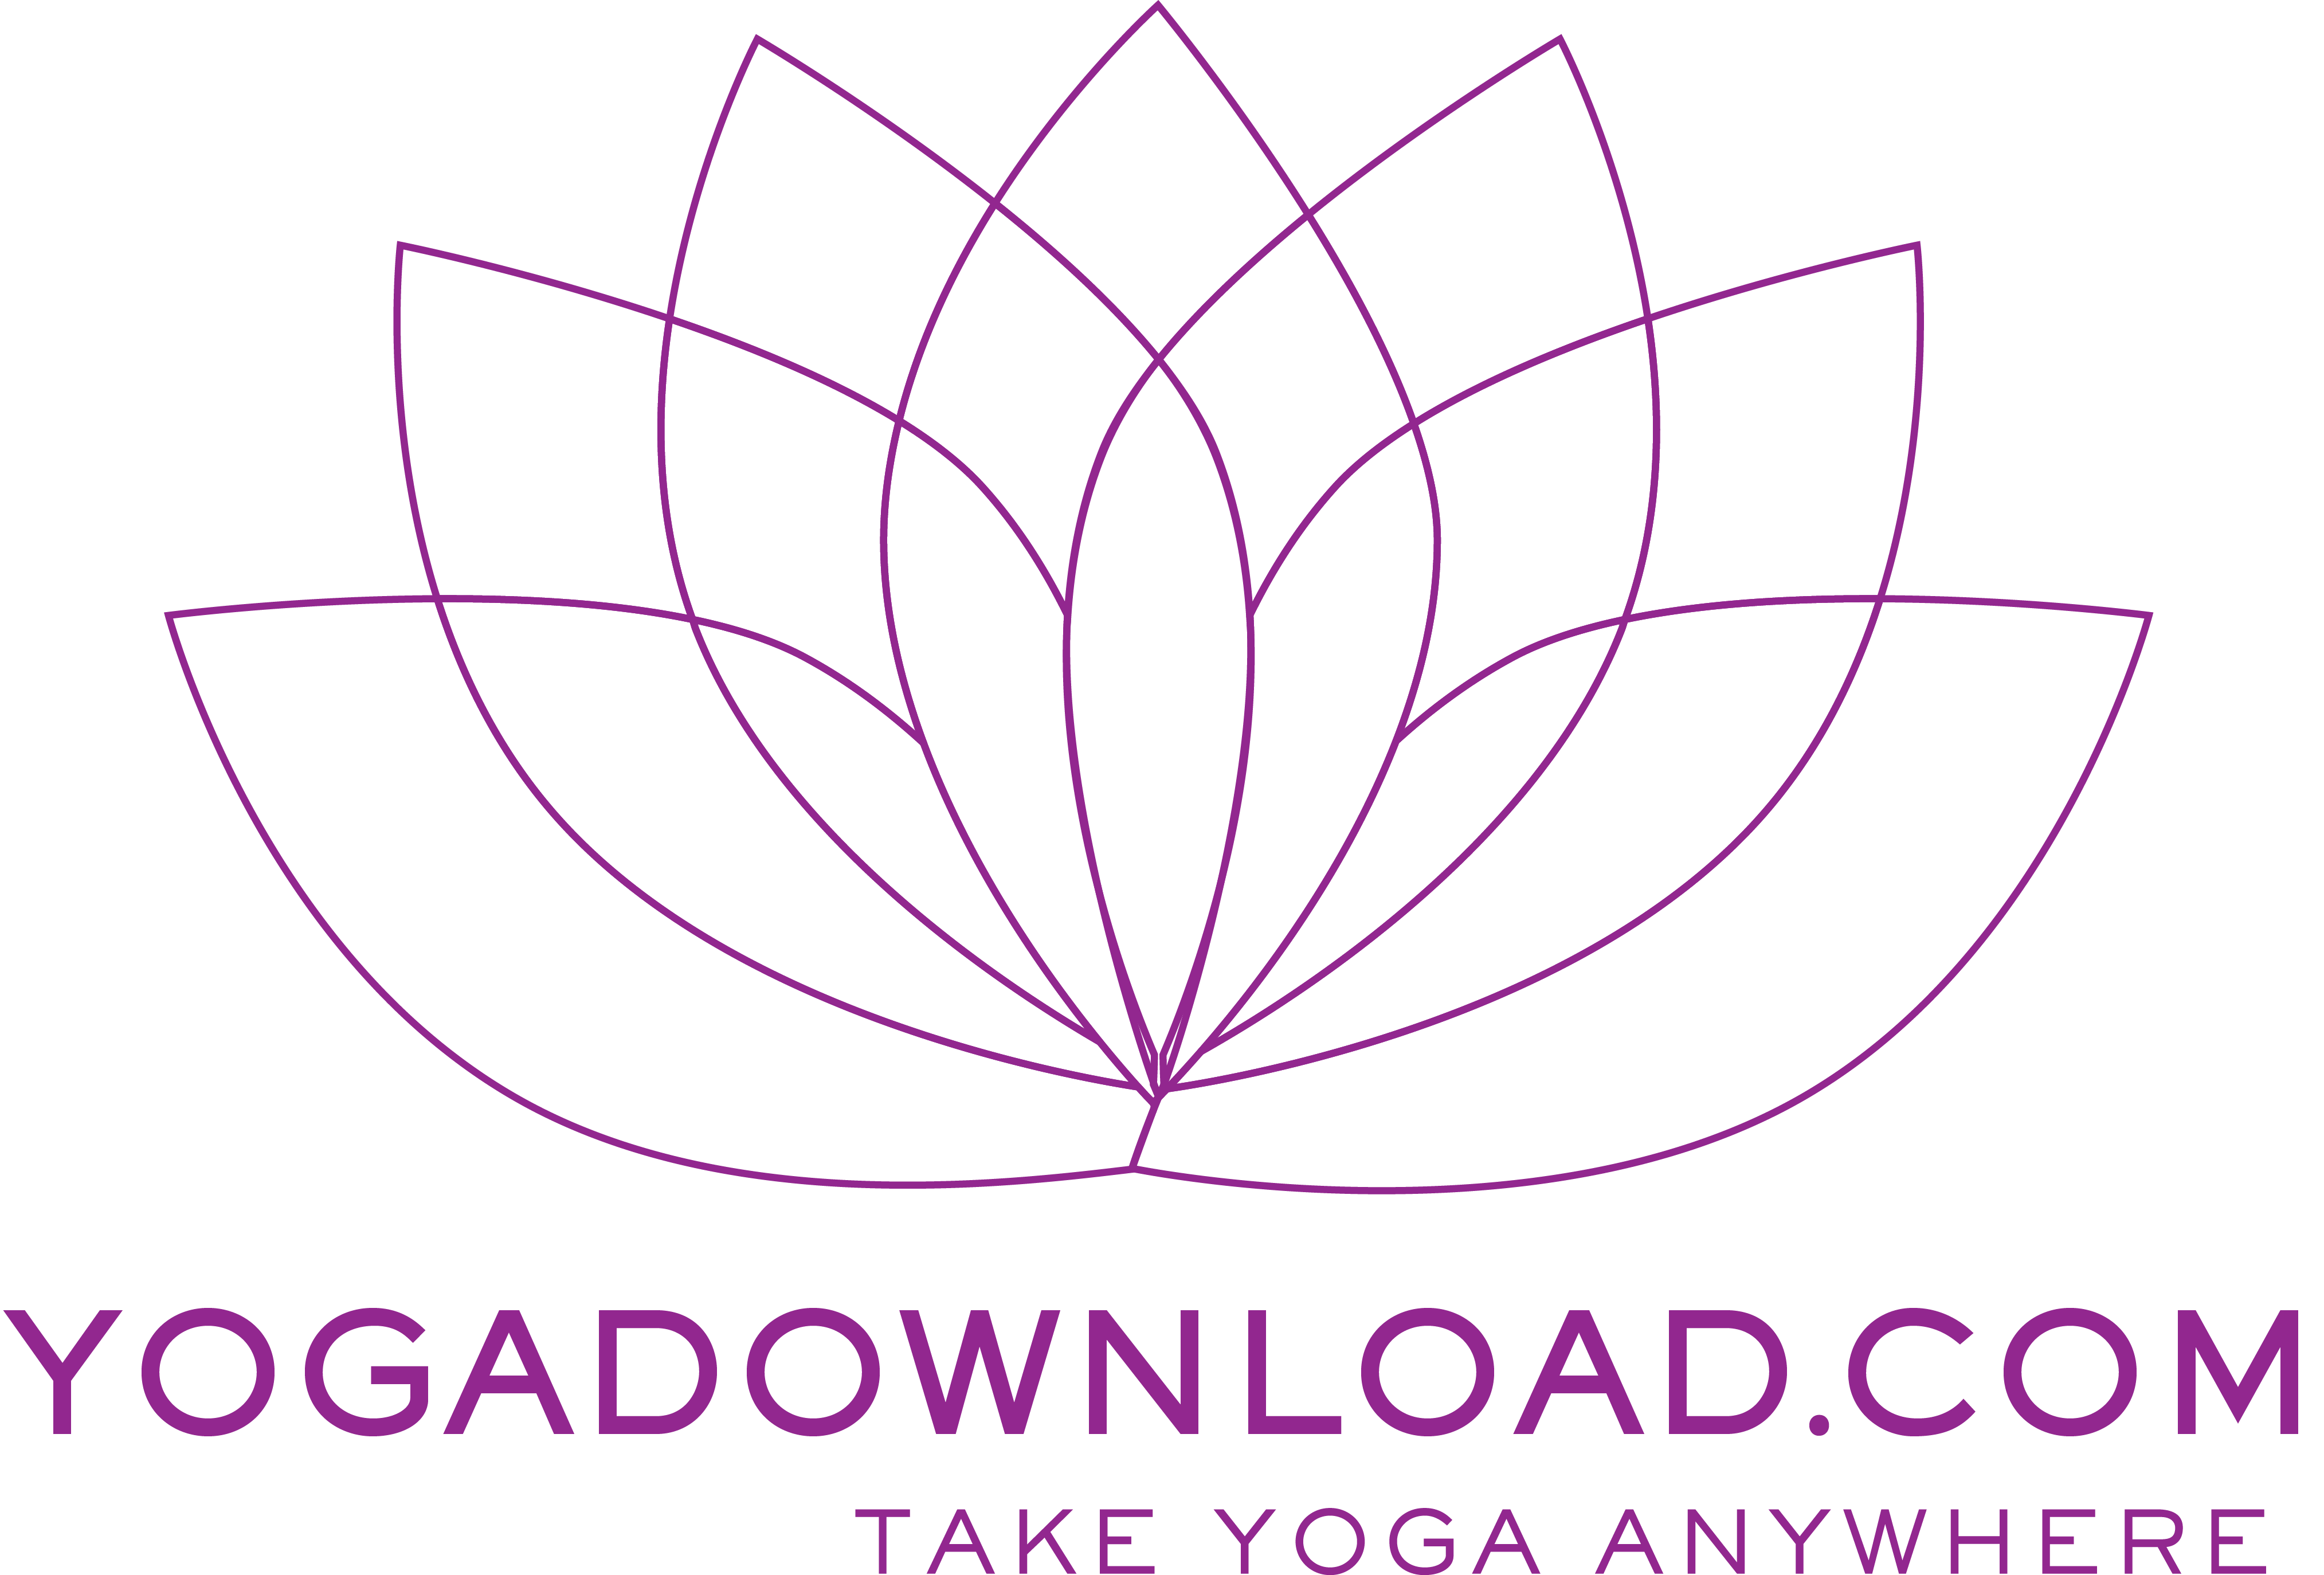 Yoga Download - Take Yoga Anywhere